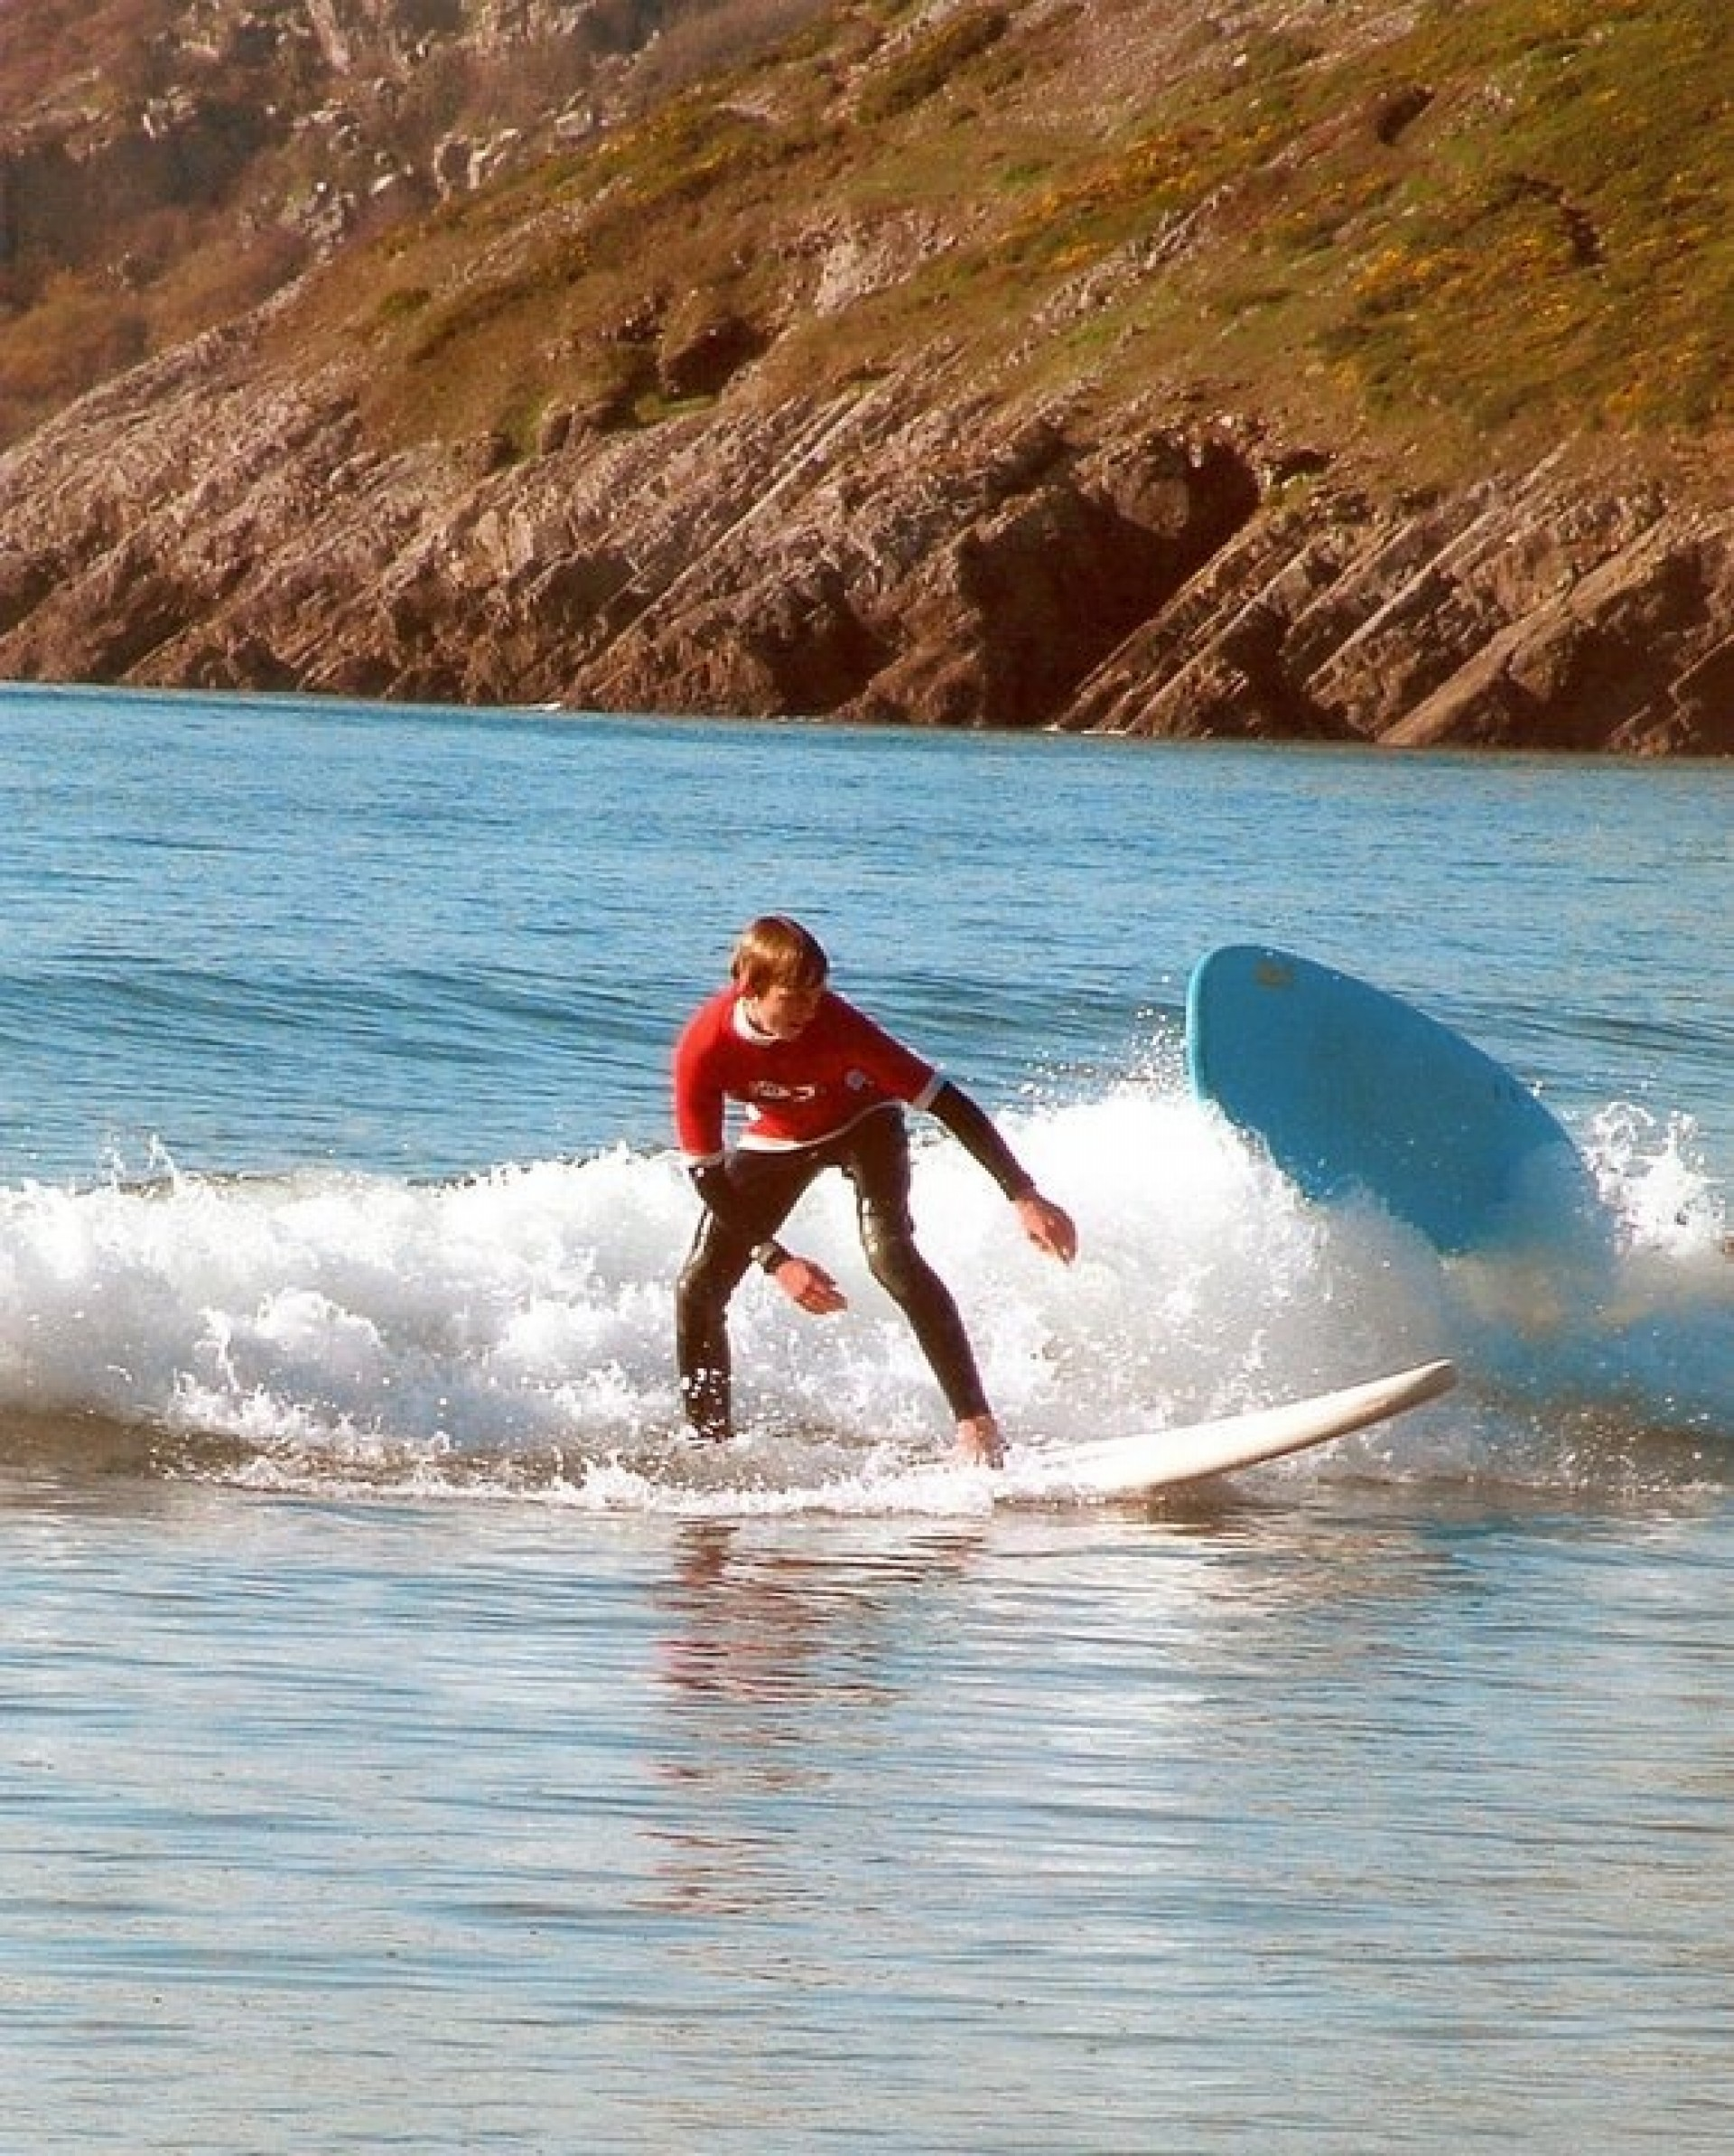 Aled Lewis's photo of Caswell Bay